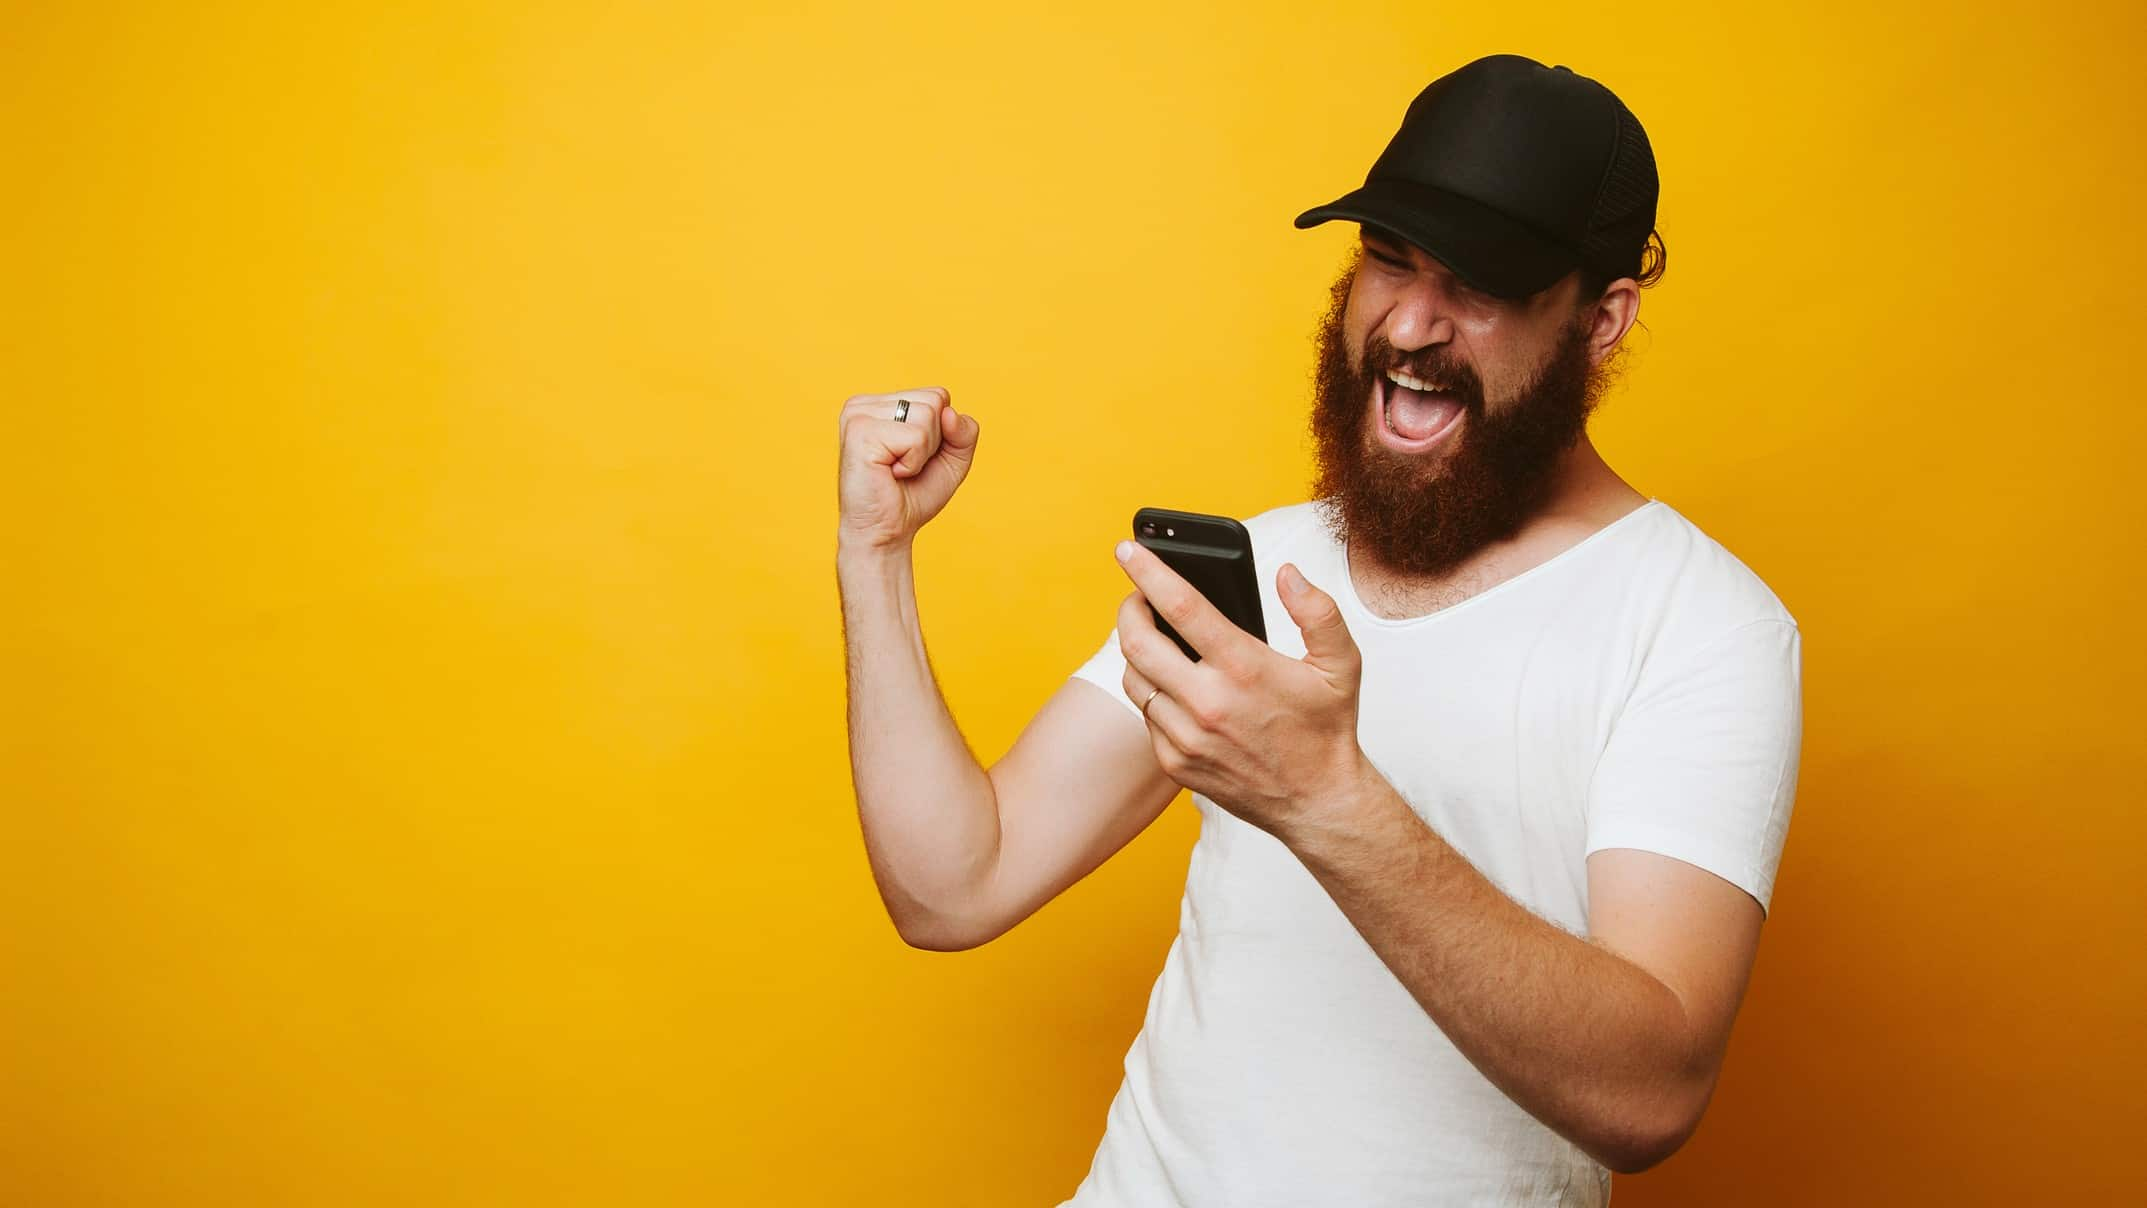 man looking at mobile phone and cheering representing surging pointsbet share price